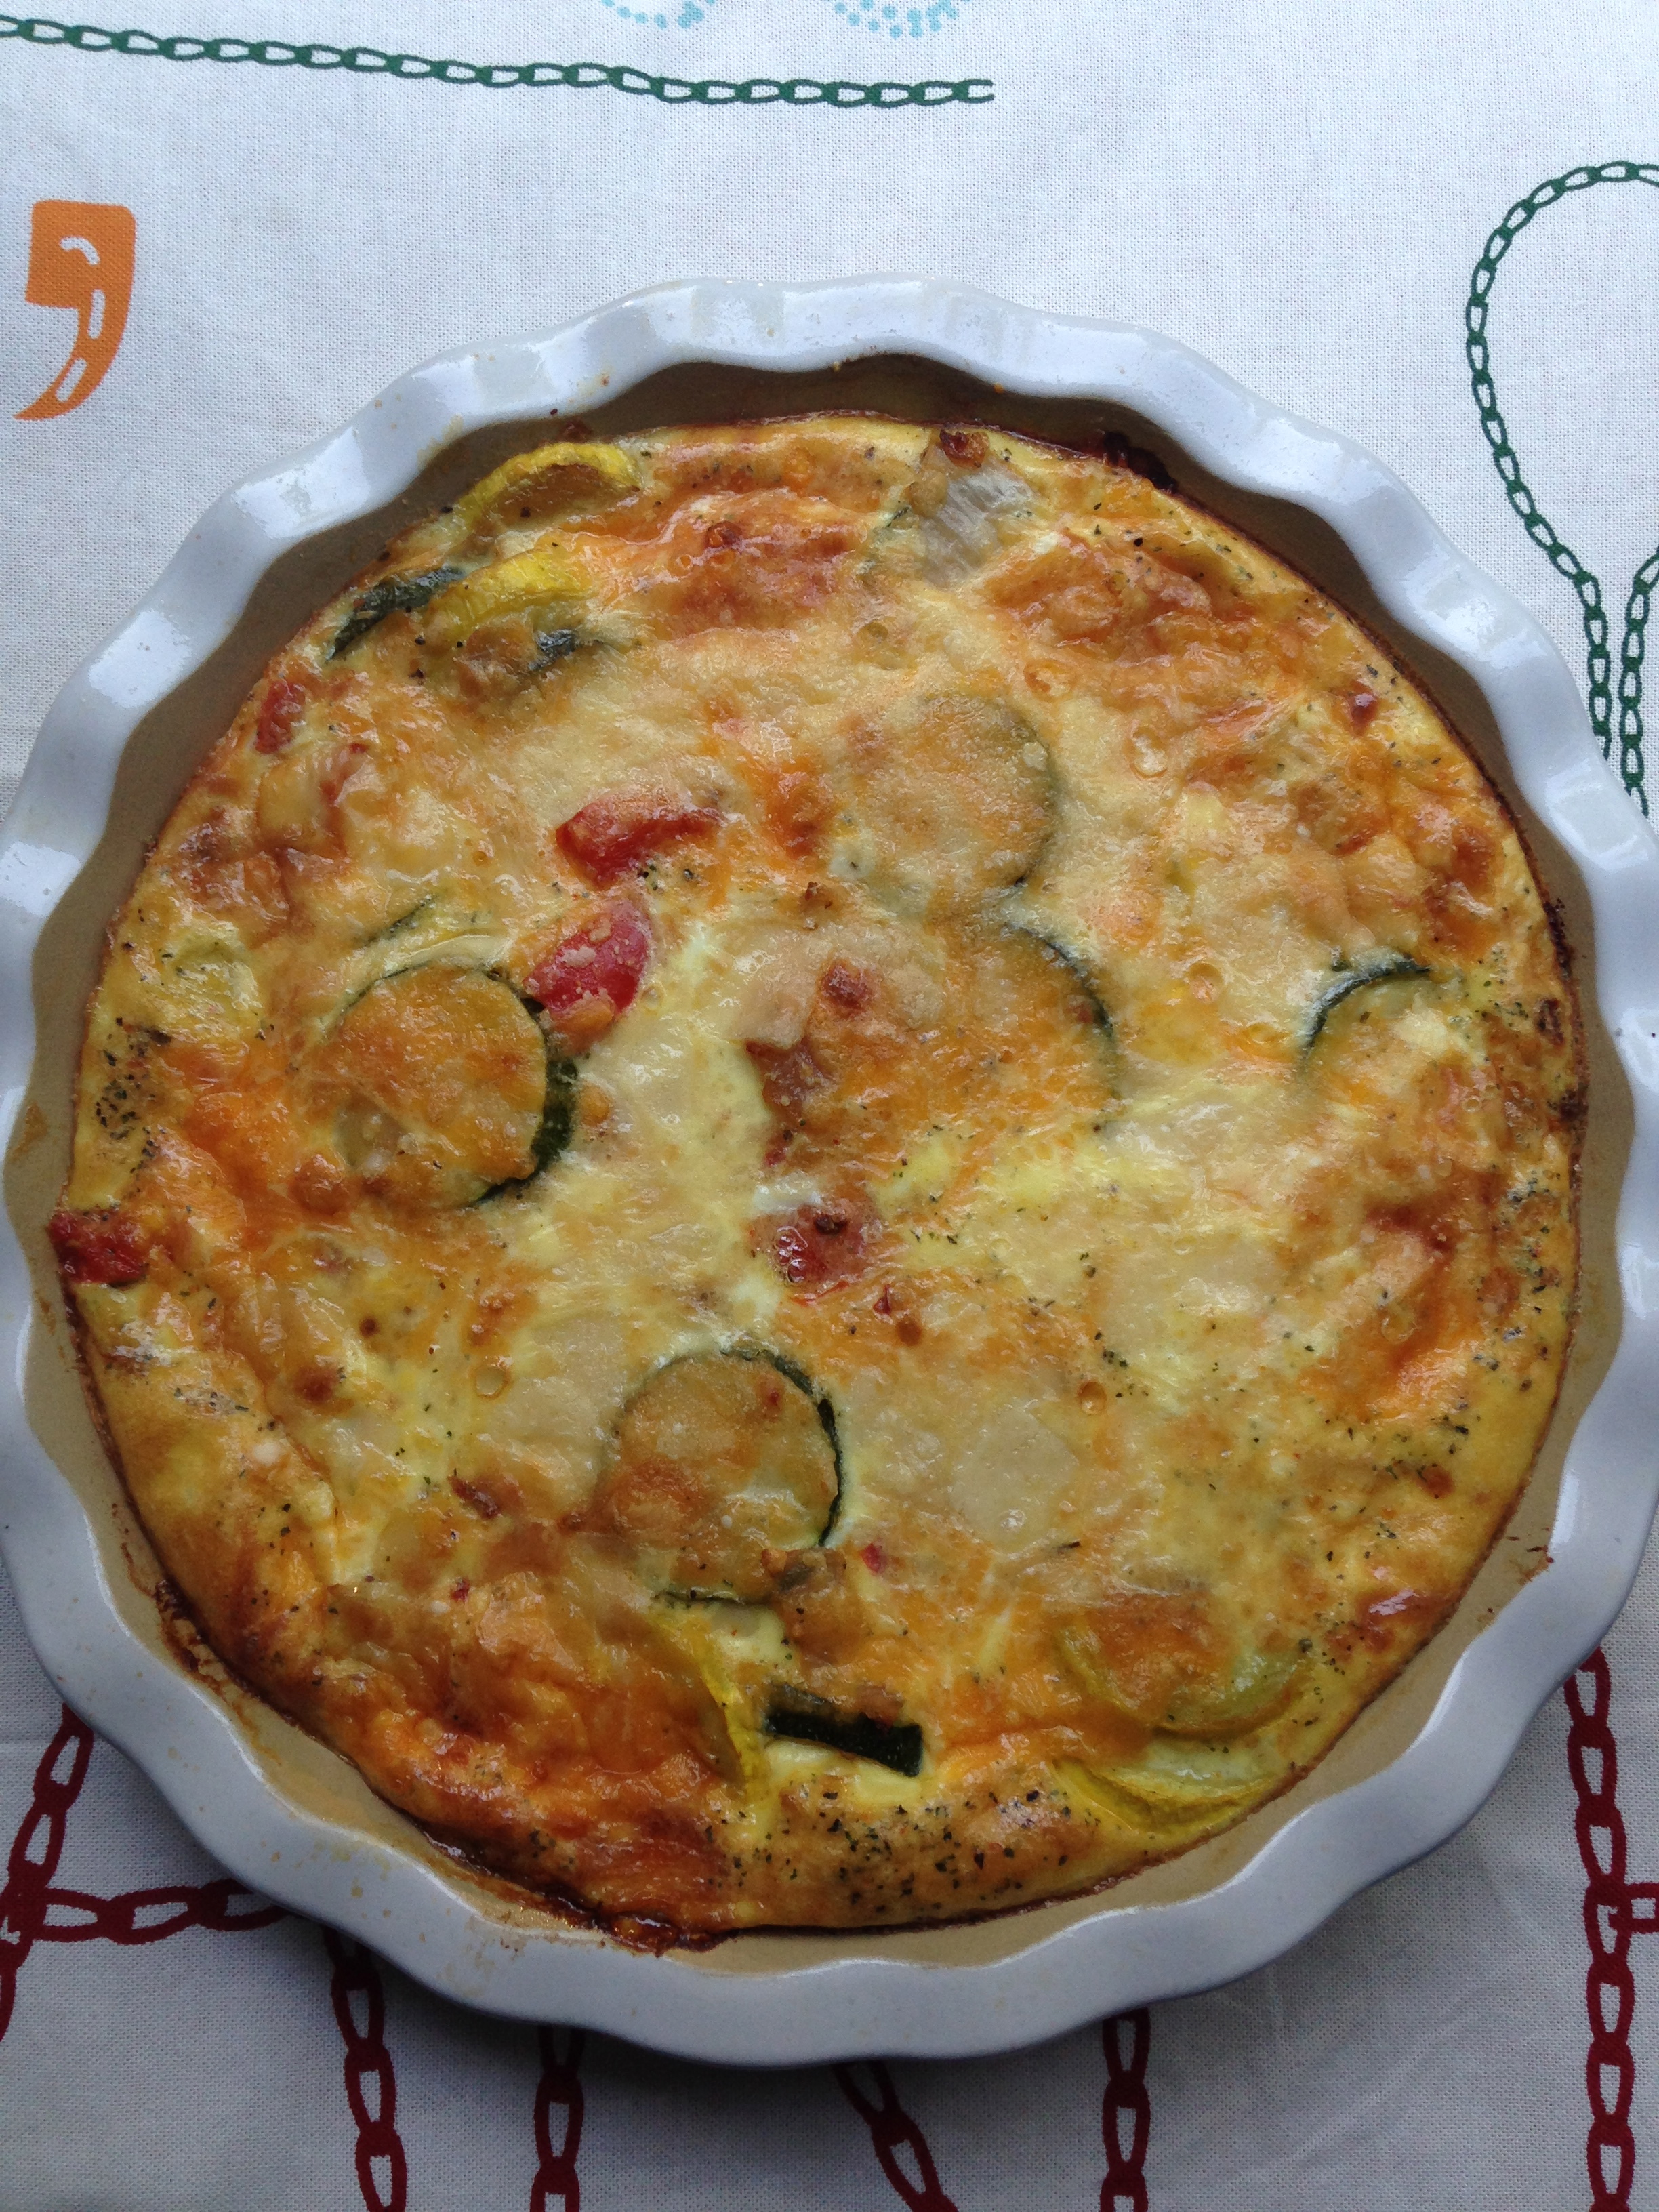 121 Calorie Crustless Veggie Quiche